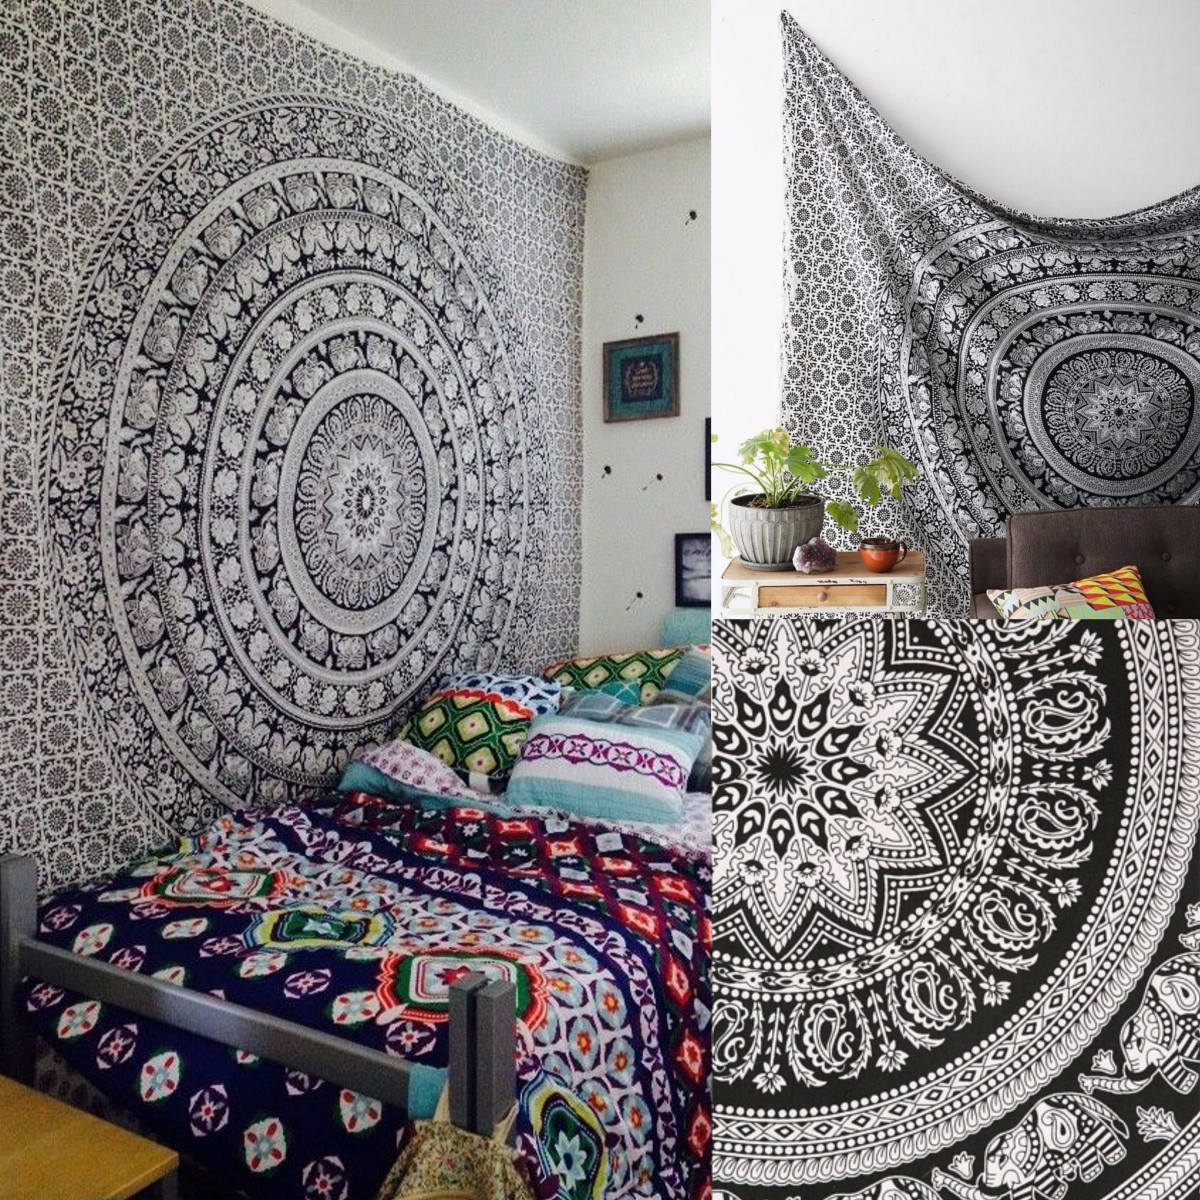 Twin Indian Mandala Wall Hanging Tapestry Bedspread Throw Mat Gypsy Home Decor Black... by